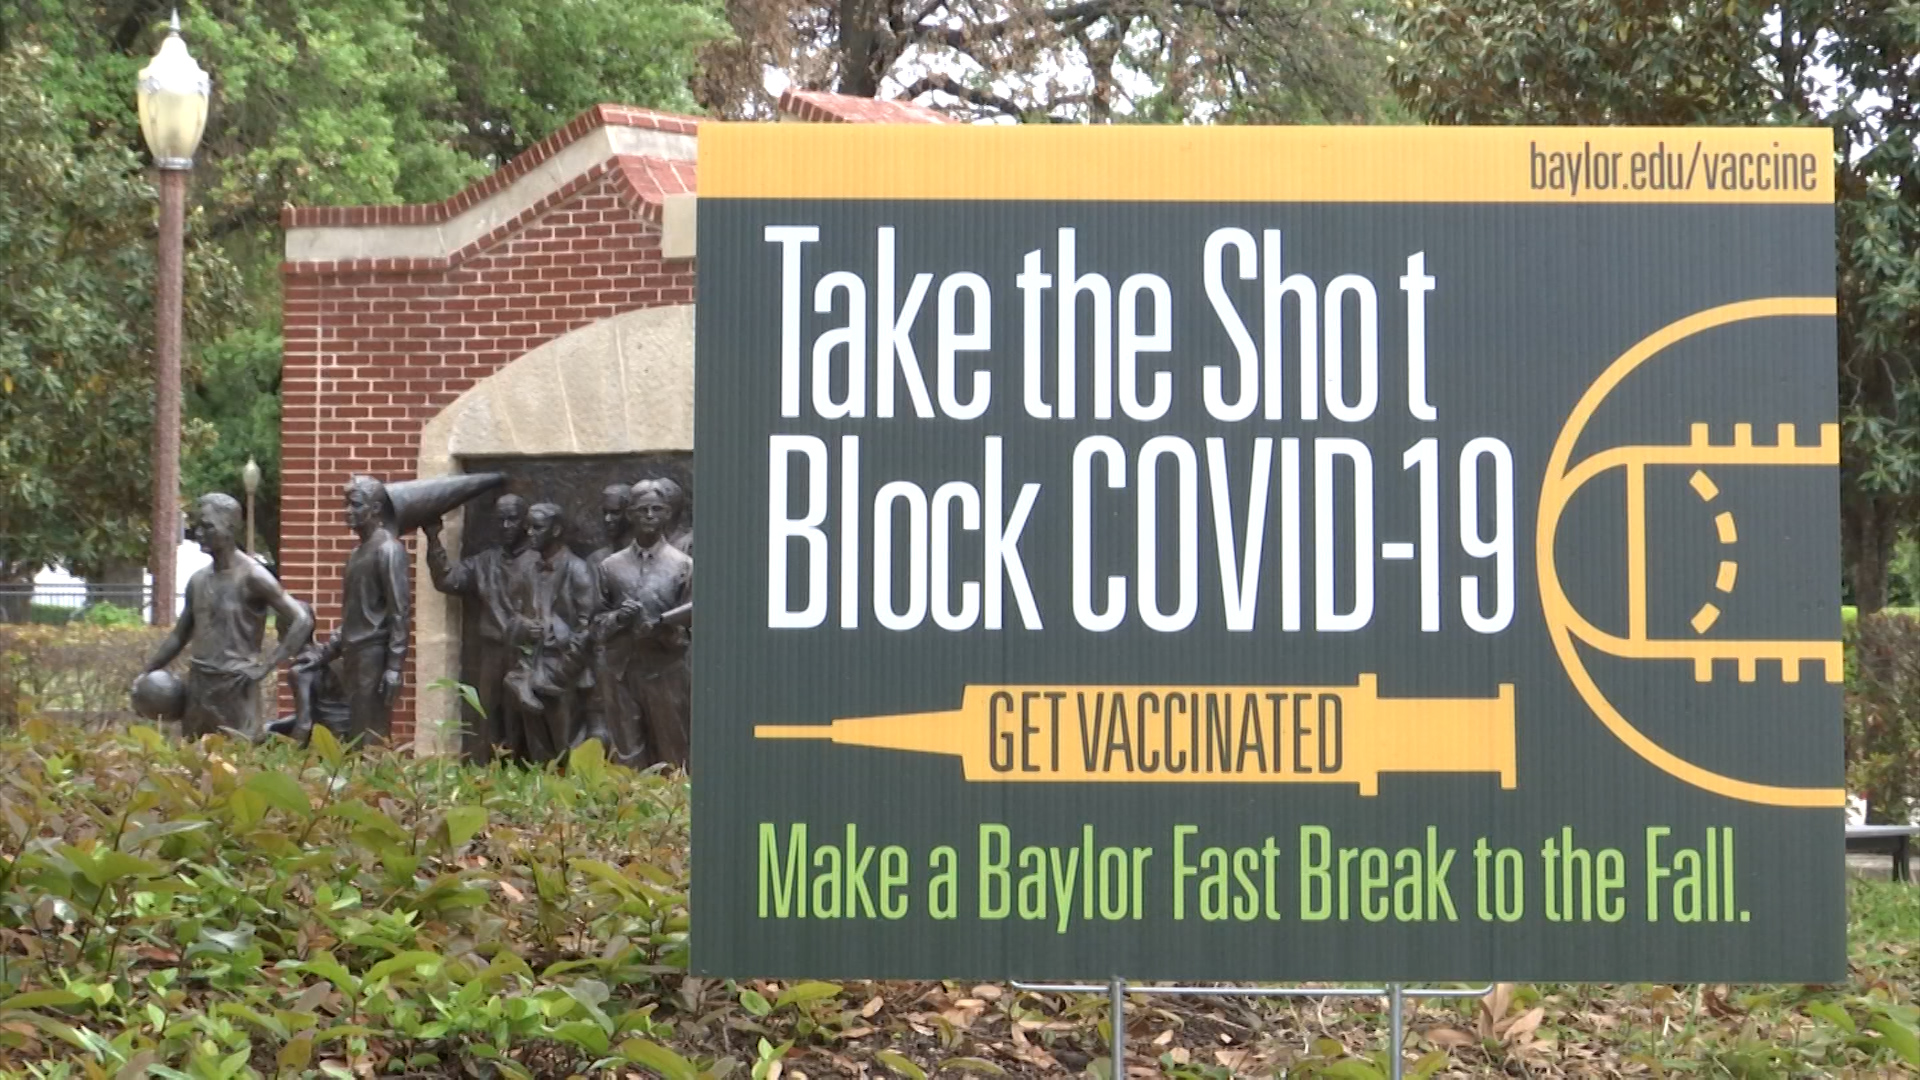 Baylor Calendar Fall 2022.Baylor Urges Students To Get Vaccinated For Normal Fall Semester Kwkt Fox 44